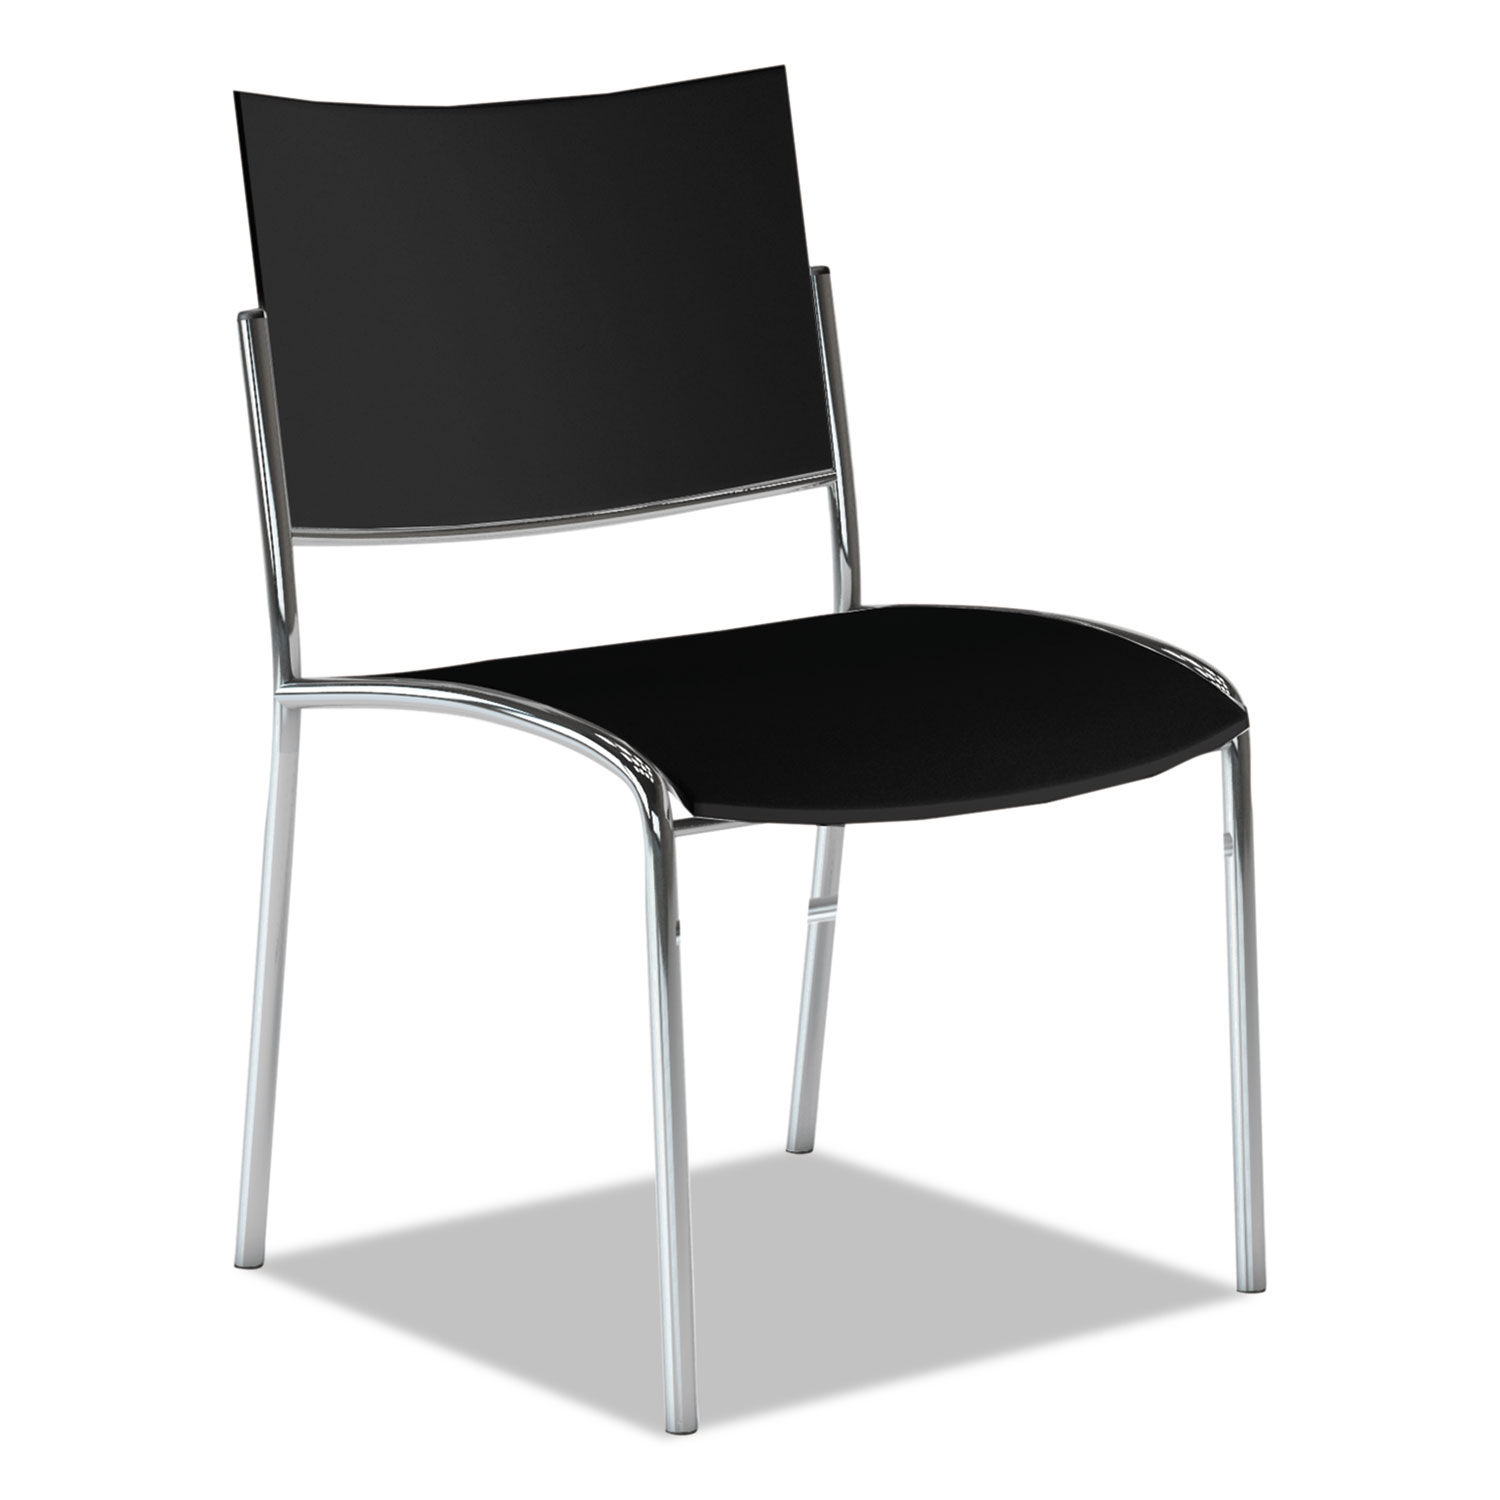 Escalate Stacking Chair Plastic Back Seat Black 4 Chairs Carton